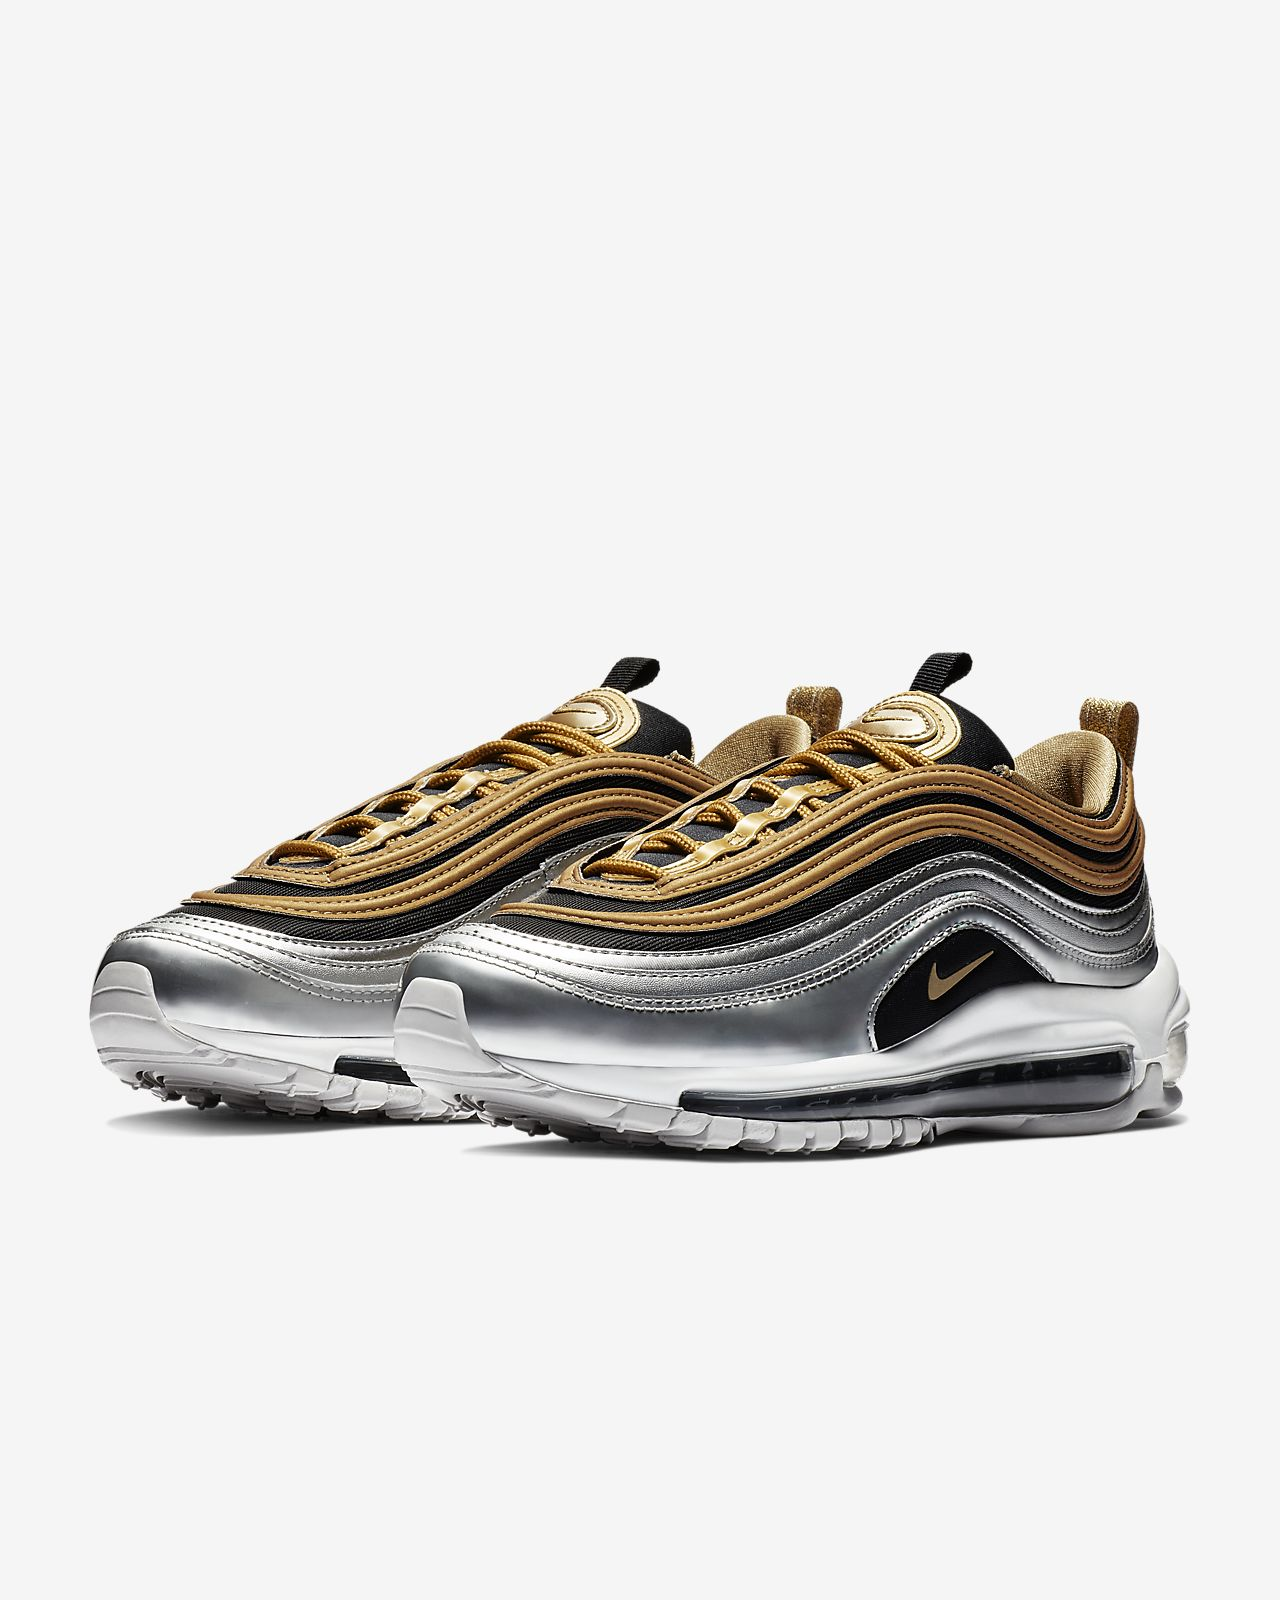 the latest 484c0 d1198 Nike Air Max 97 SE Metallic Women's Shoe